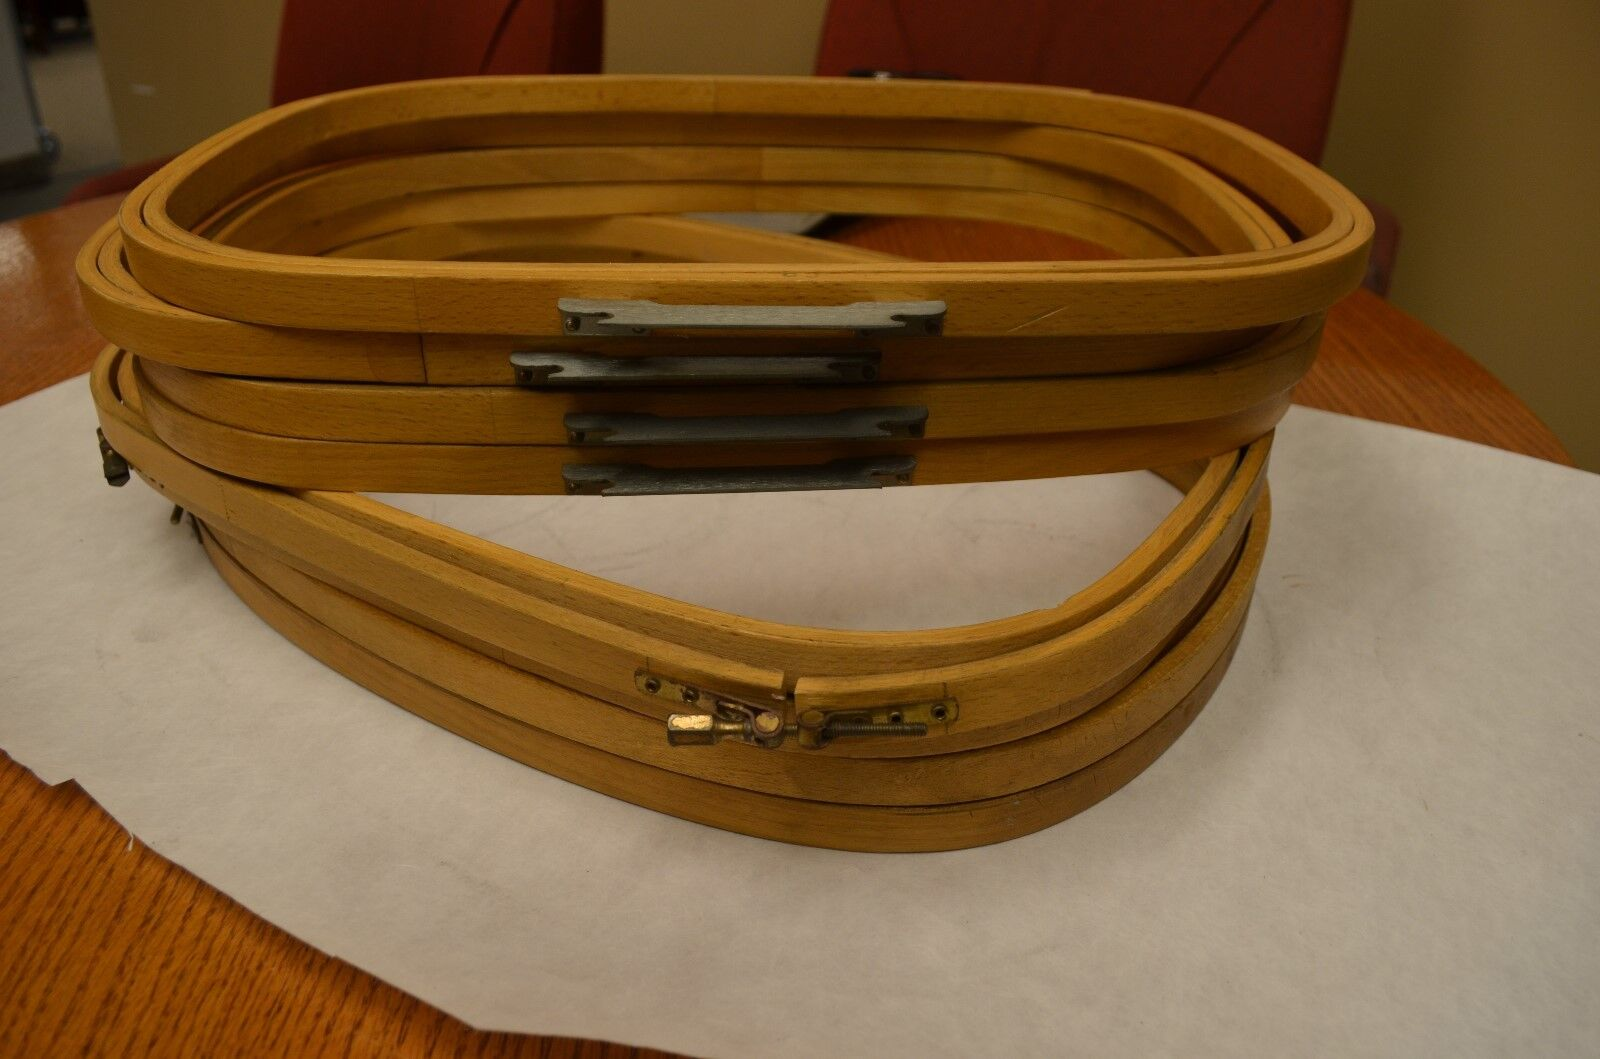 """Melco EMC 16/"""" x 12 DH RECT Wood Industrial Embroidery Machine Hoop"""